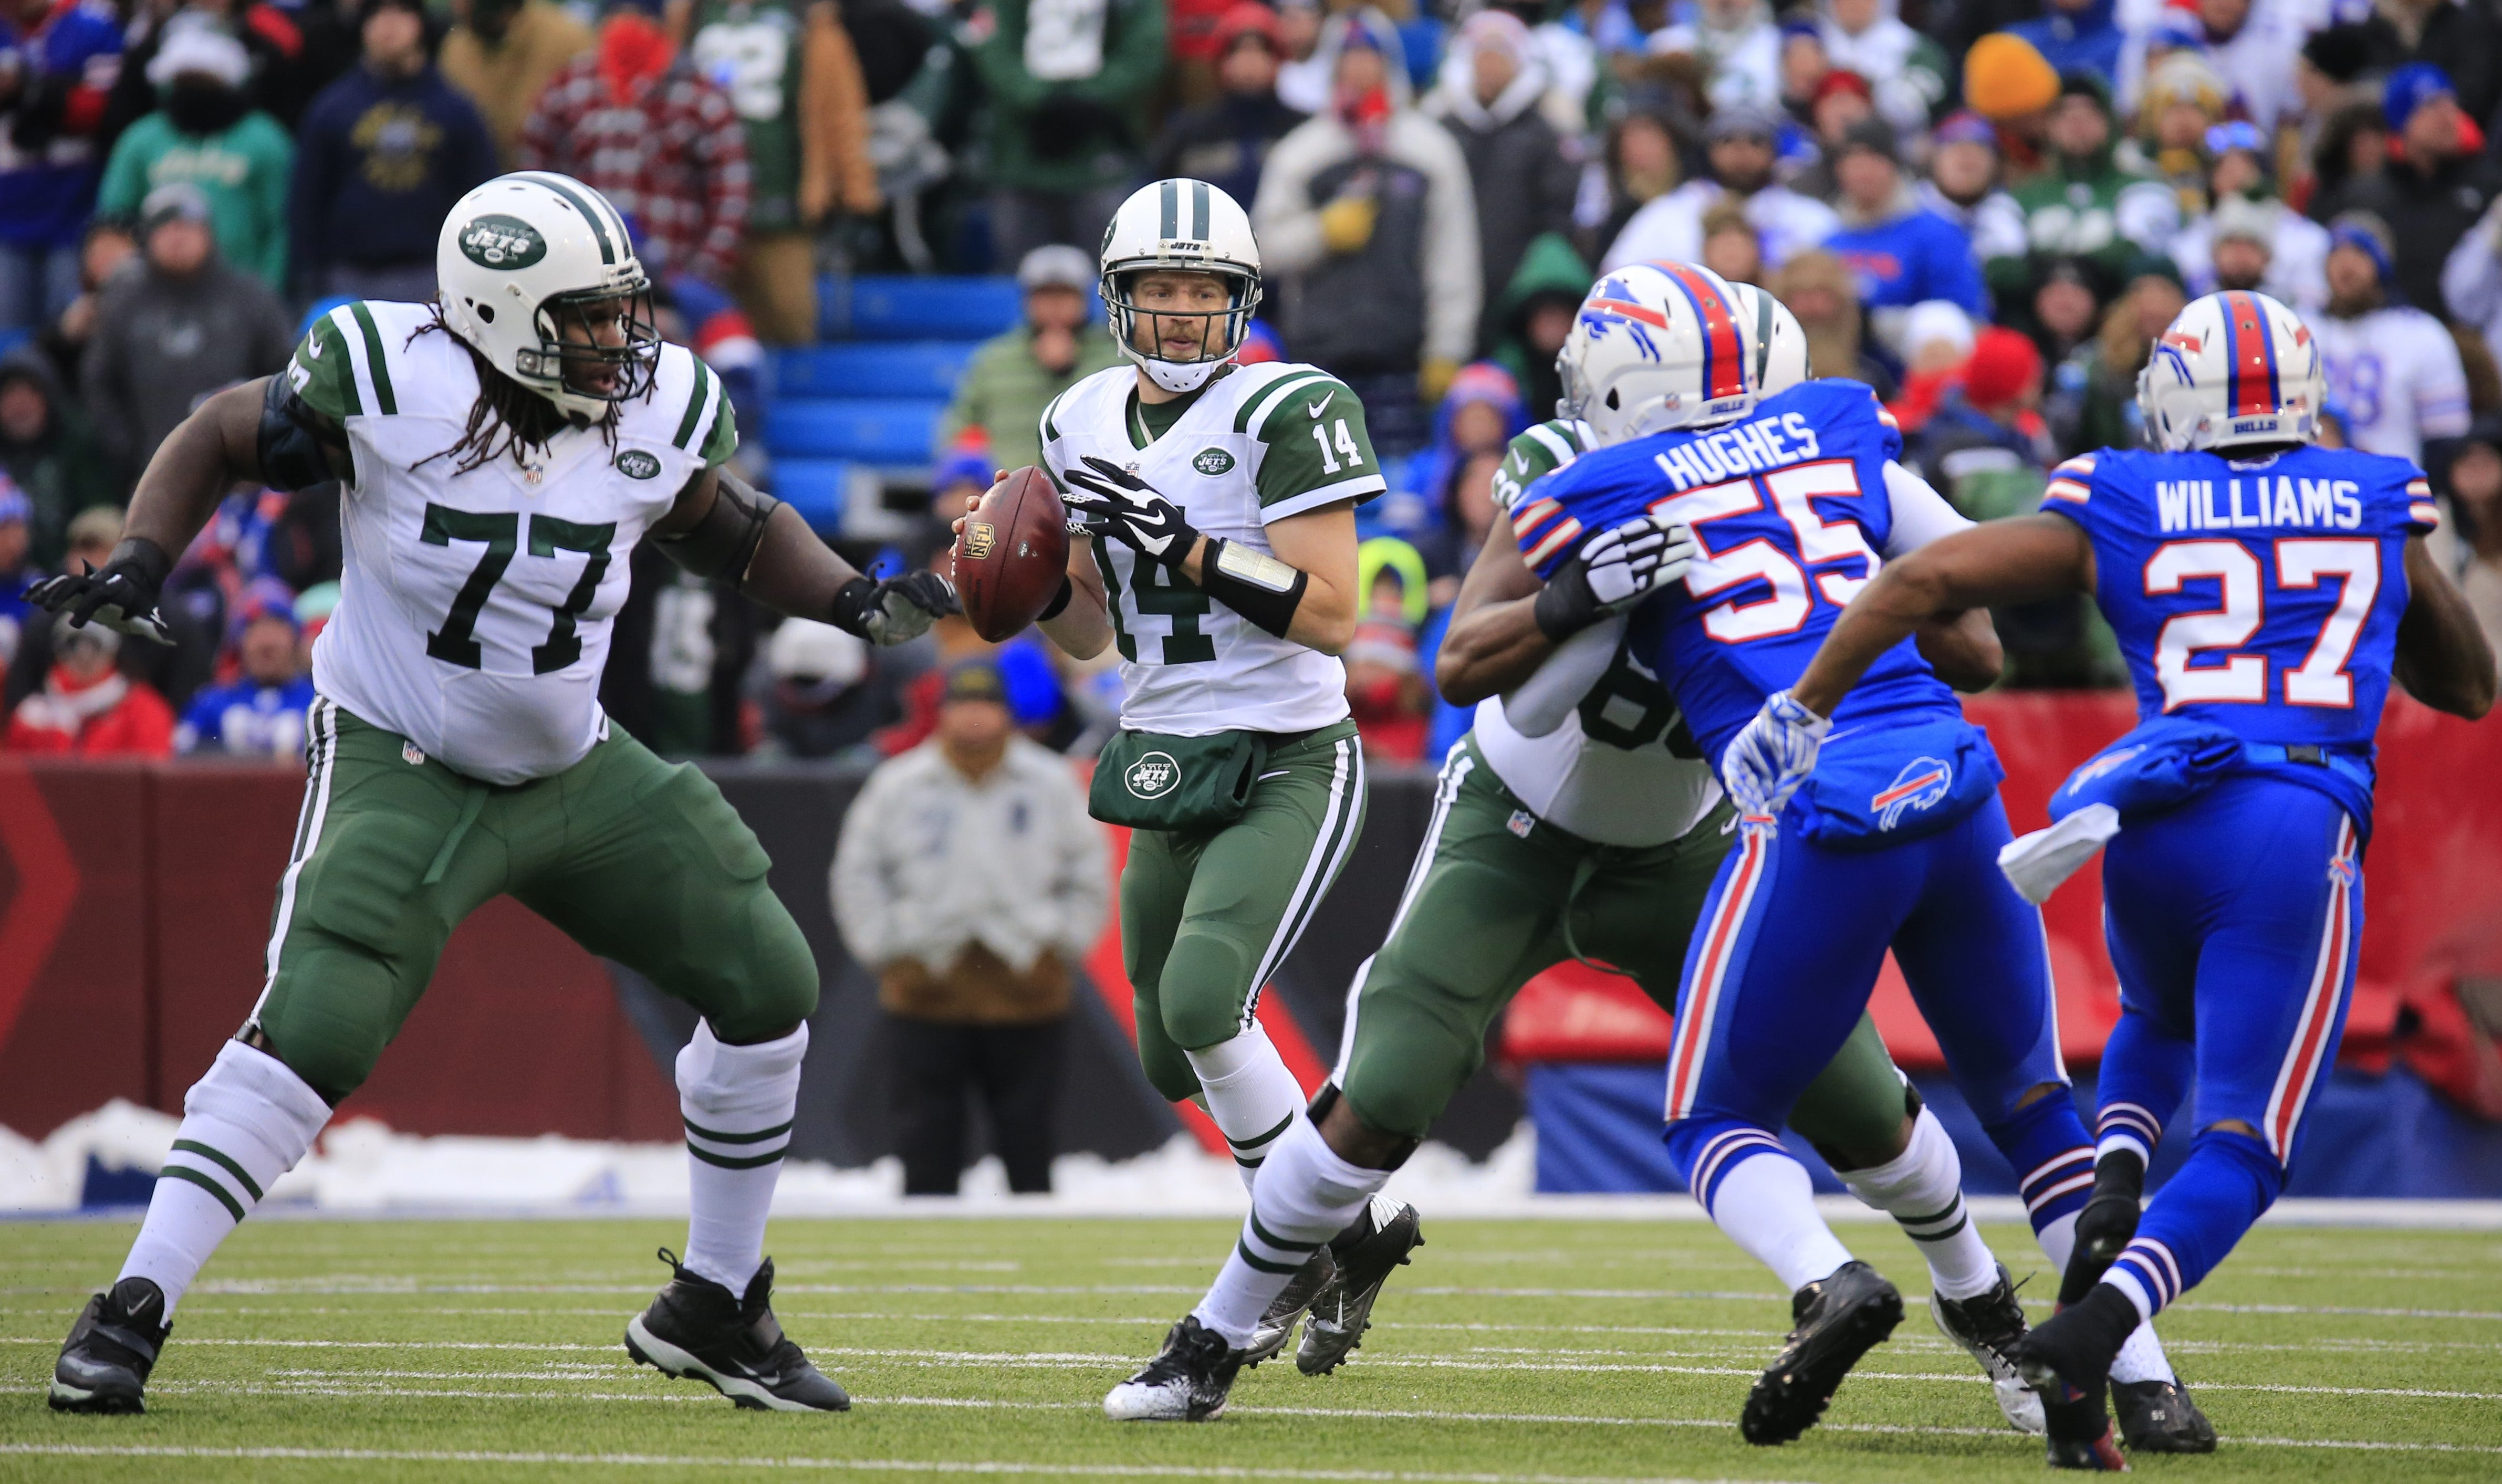 New York Jets quarterback Ryan Fitzpatrick throws against the Buffalo Bills during second quarter action at Ralph Wilson Stadium on Sunday, Jan. 3, 2016. (Harry Scull Jr./Buffalo News)